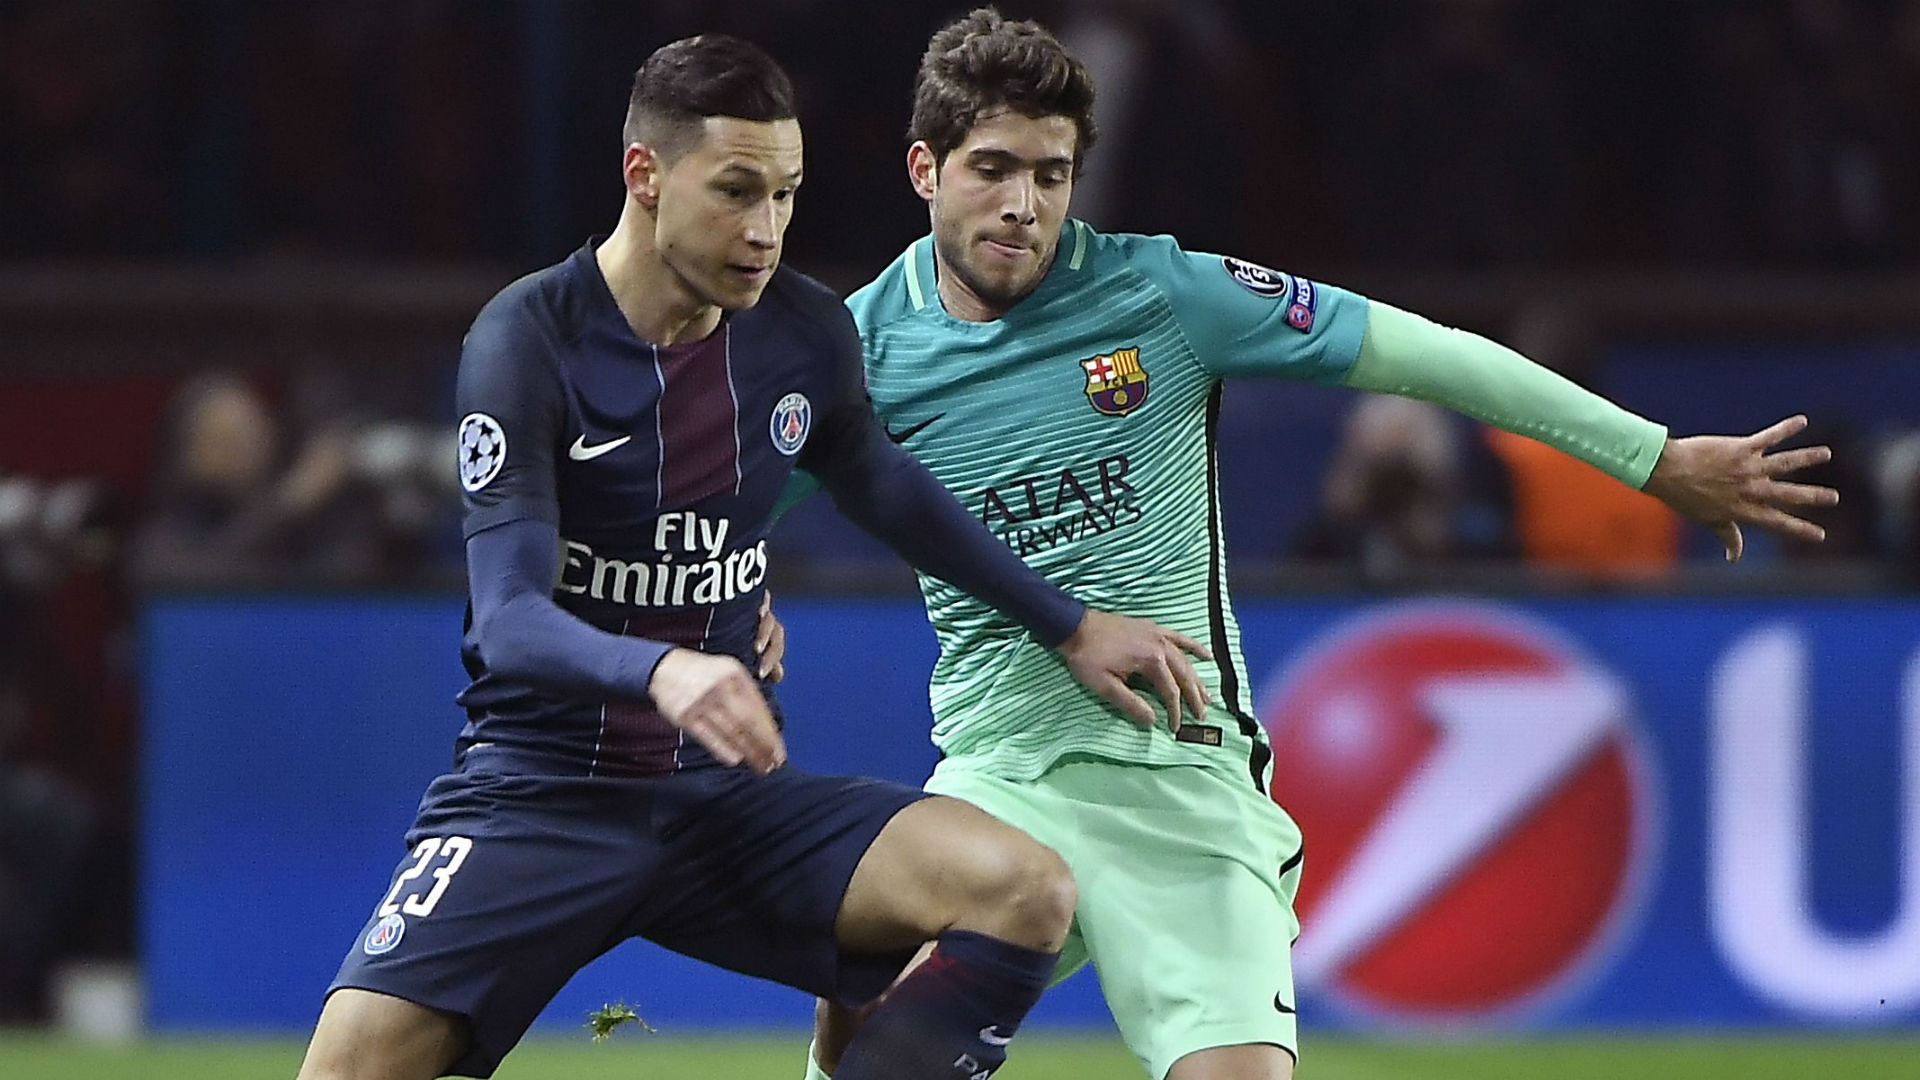 PSG: UCL: PSG Shocks Barcelona With 4:0 Thrashing